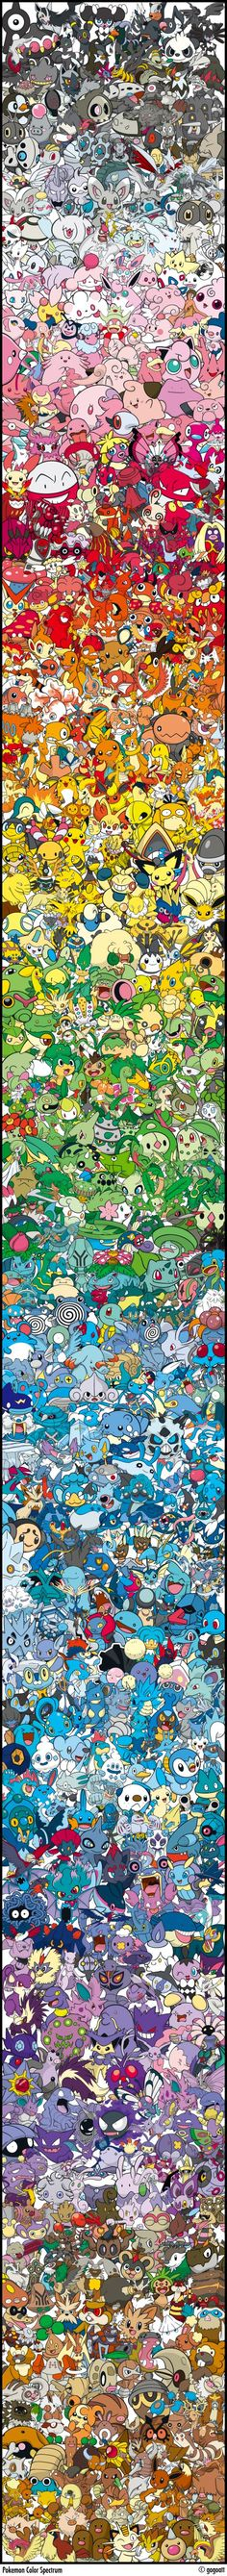 Pokemon sorted by color